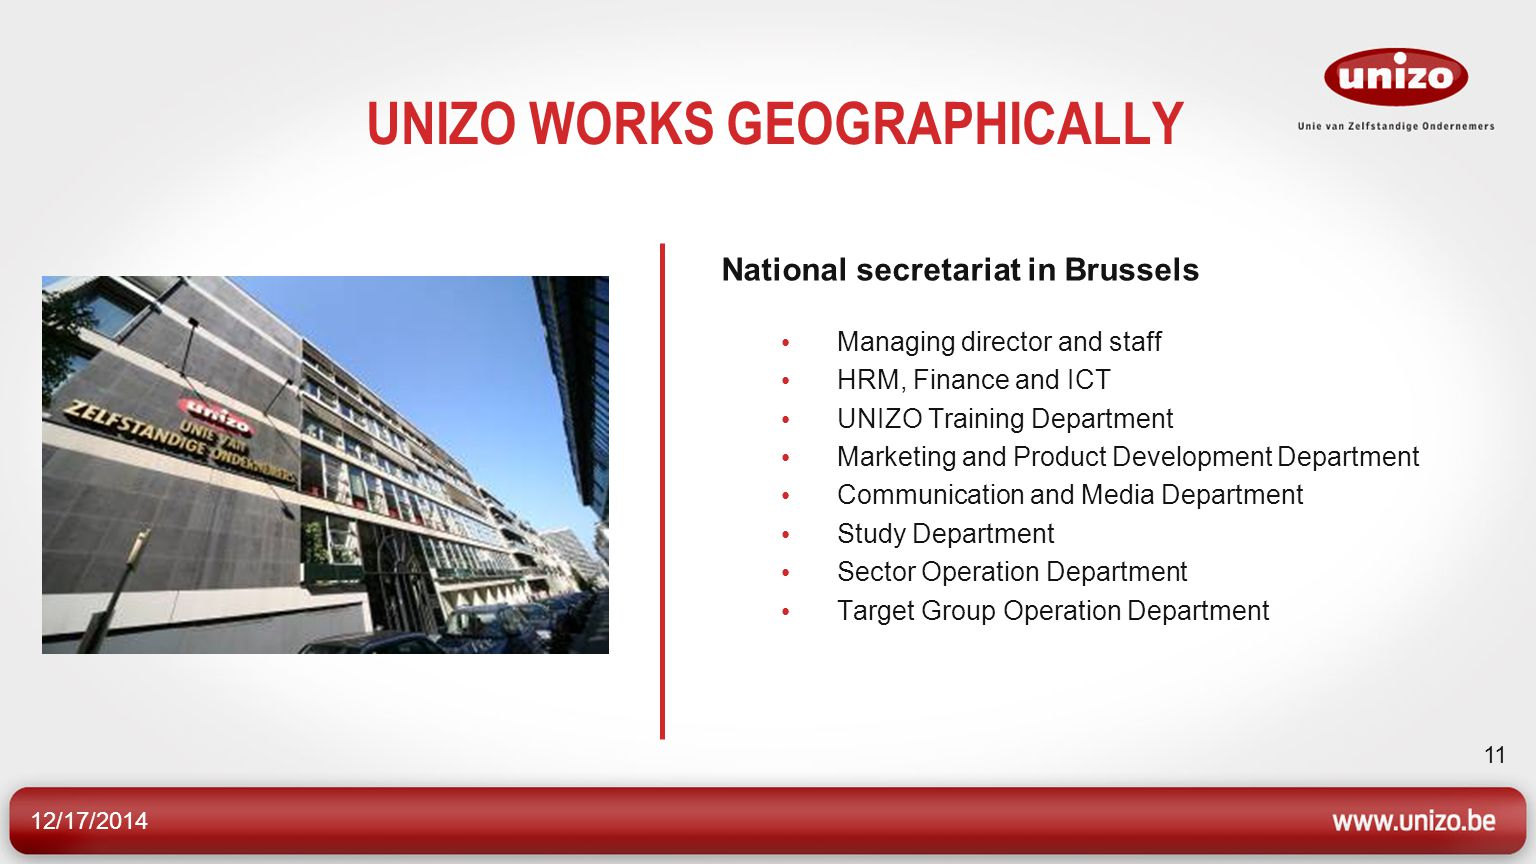 12/17/2014 11 UNIZO WORKS GEOGRAPHICALLY National secretariat in Brussels Managing director and staff HRM, Finance and ICT UNIZO Training Department Marketing and Product Development Department Communication and Media Department Study Department Sector Operation Department Target Group Operation Department